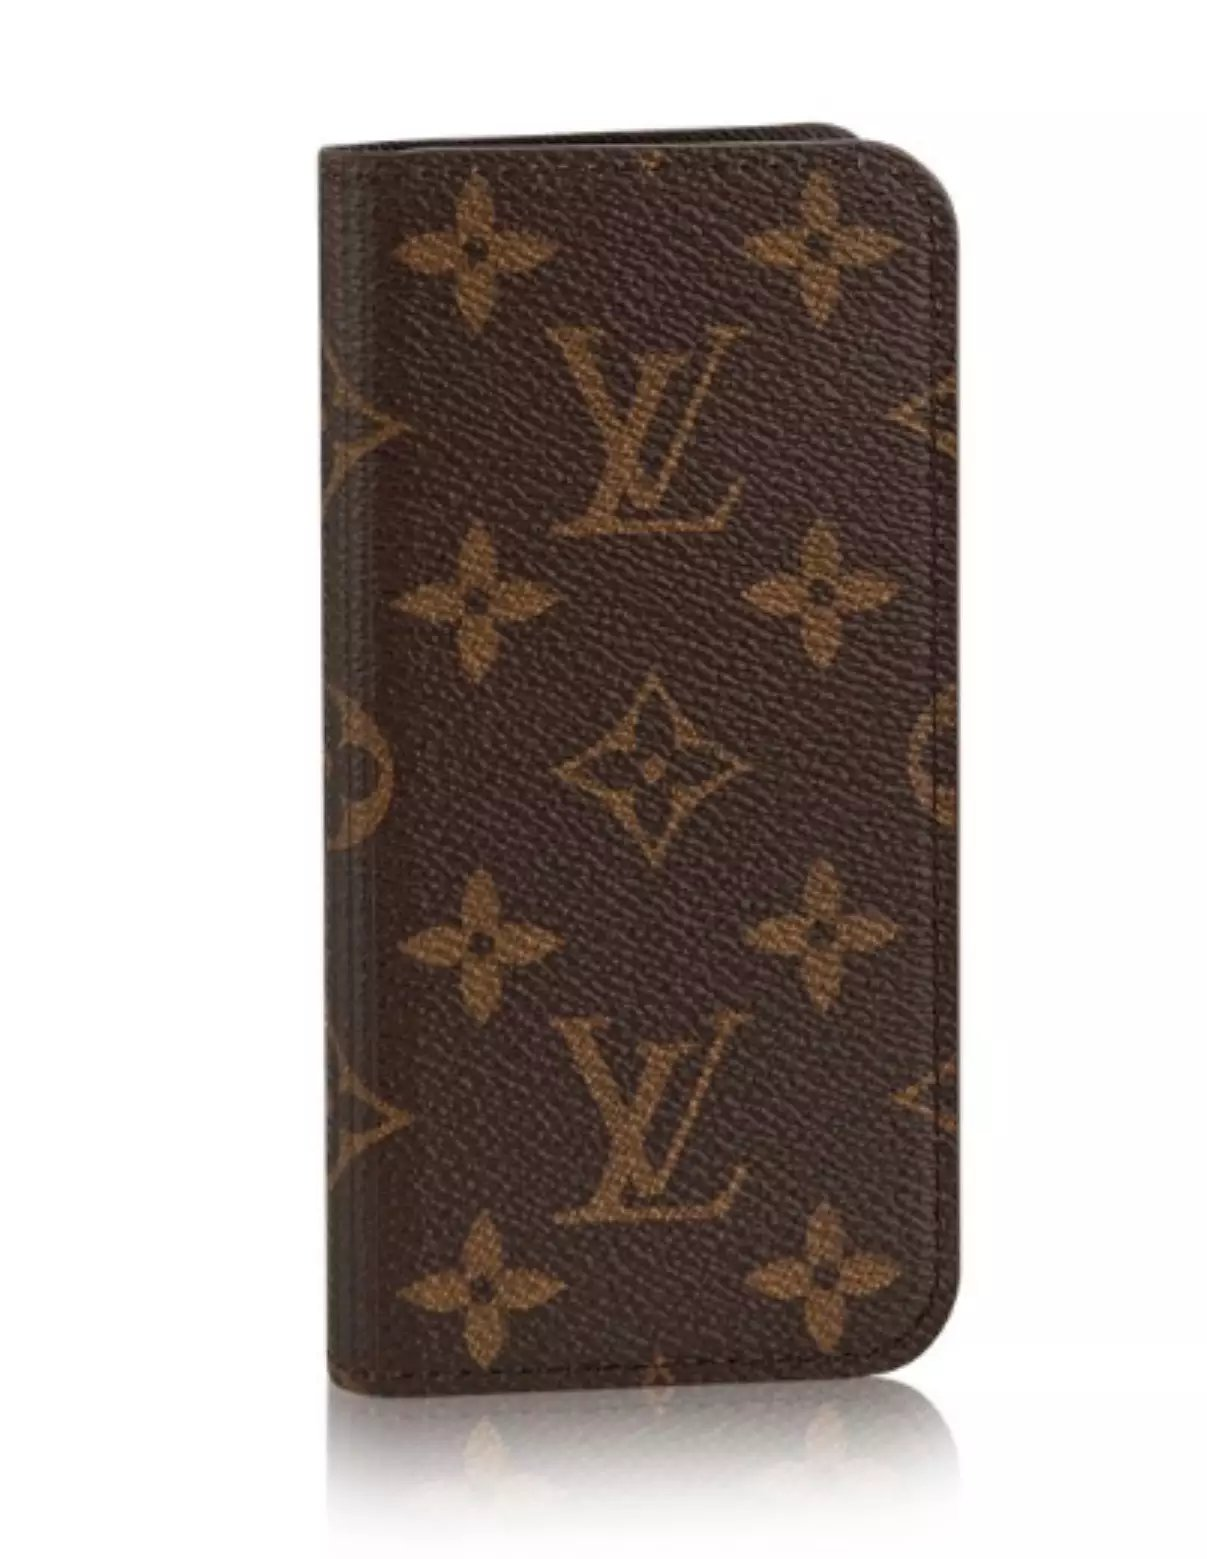 handy hülle iphone iphone hülle bedrucken Louis Vuitton iphone 8 Plus hüllen iphone 8 Plus test handytasche i phone 8 Plus iphone 8 Plus hülle pink iphone 8 Plus leder hülle original iphone 8 Plus hülle iphone 8 Plus a8 Plus original